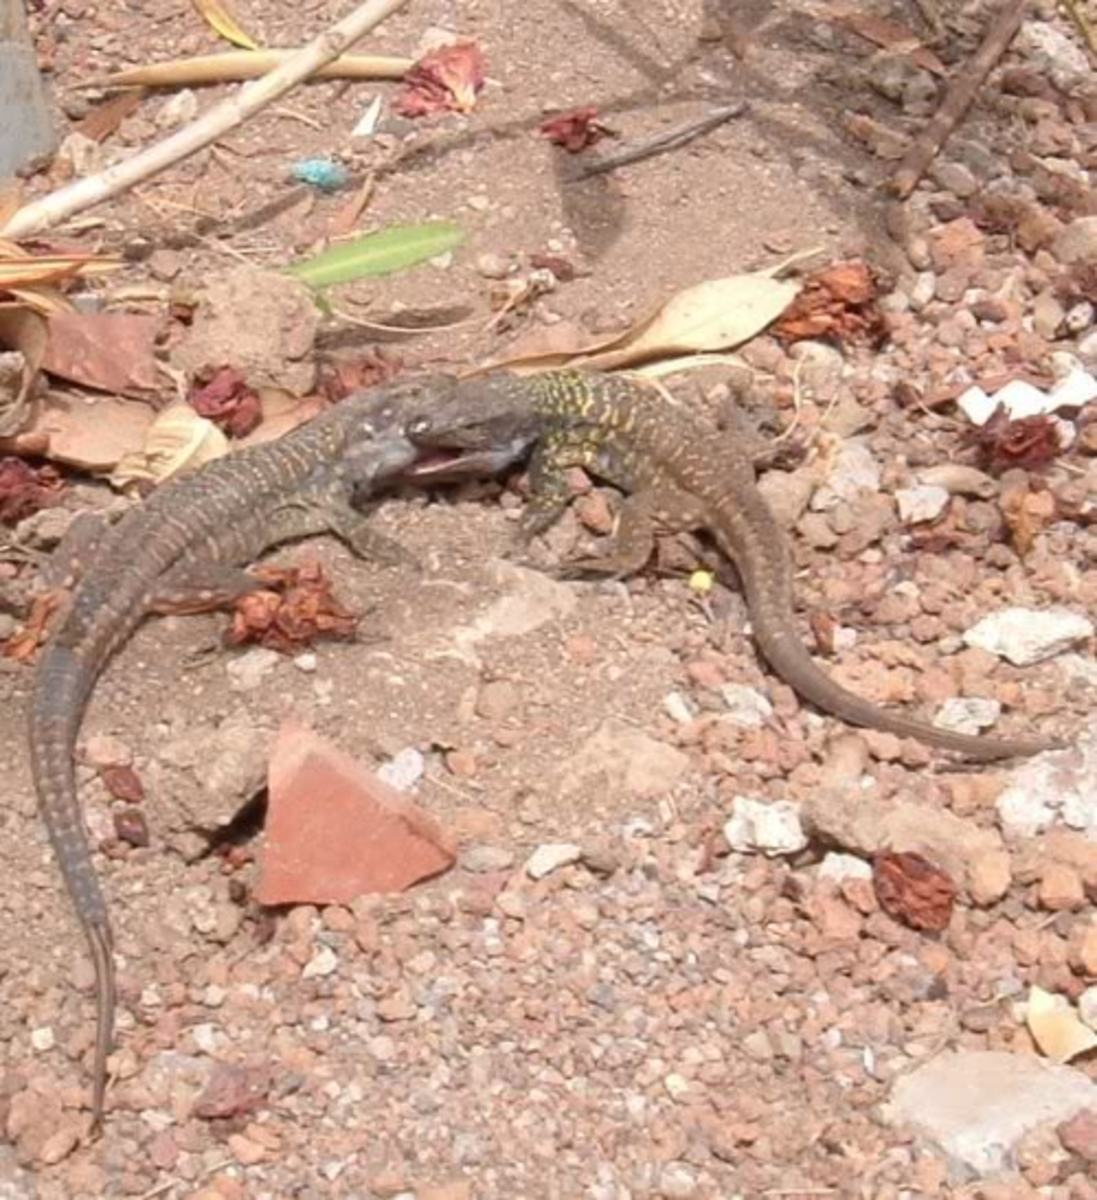 Tenerife Lizard males fighting